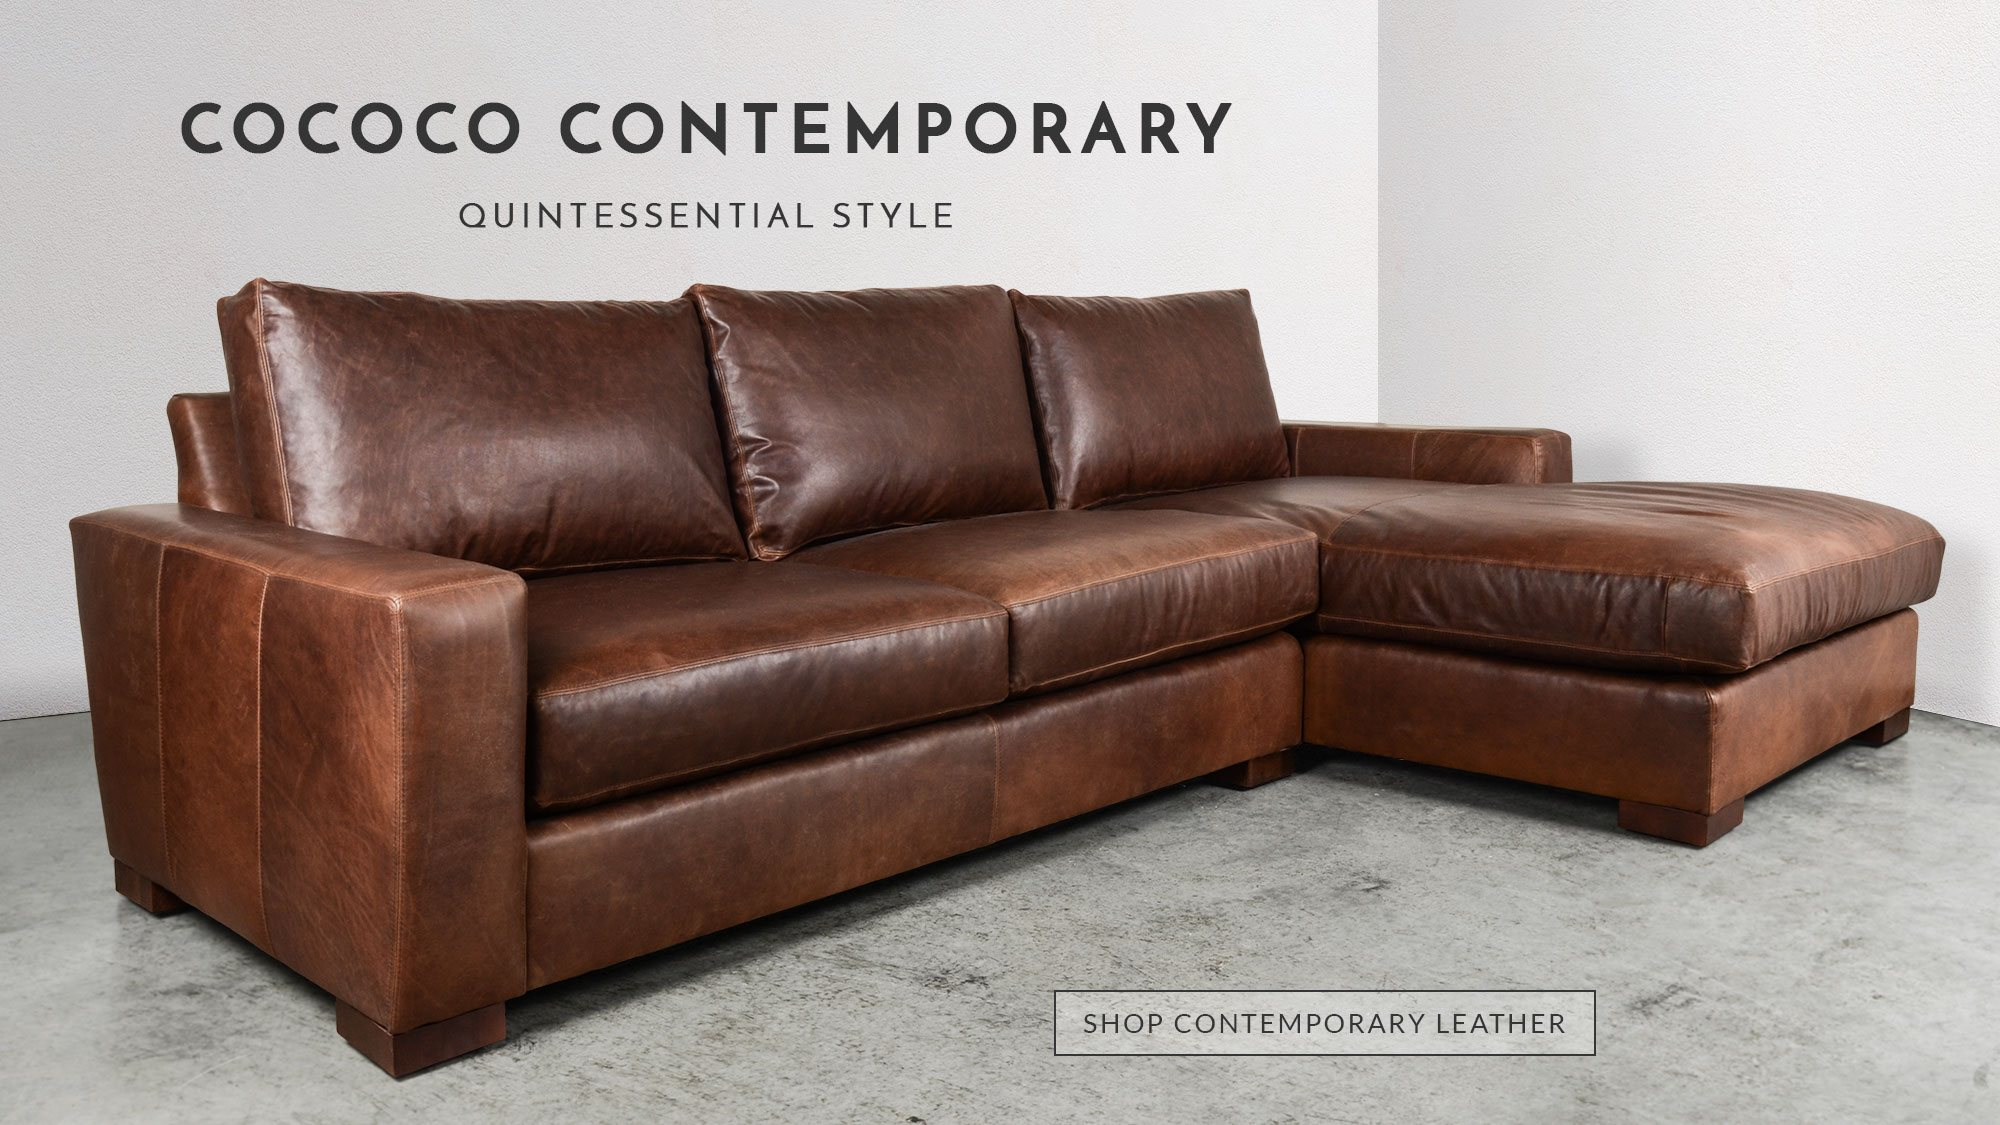 COCOCO Home provides a unique shopping experience when compared to high-end  furniture stores, offering custom leather or fabric furniture.